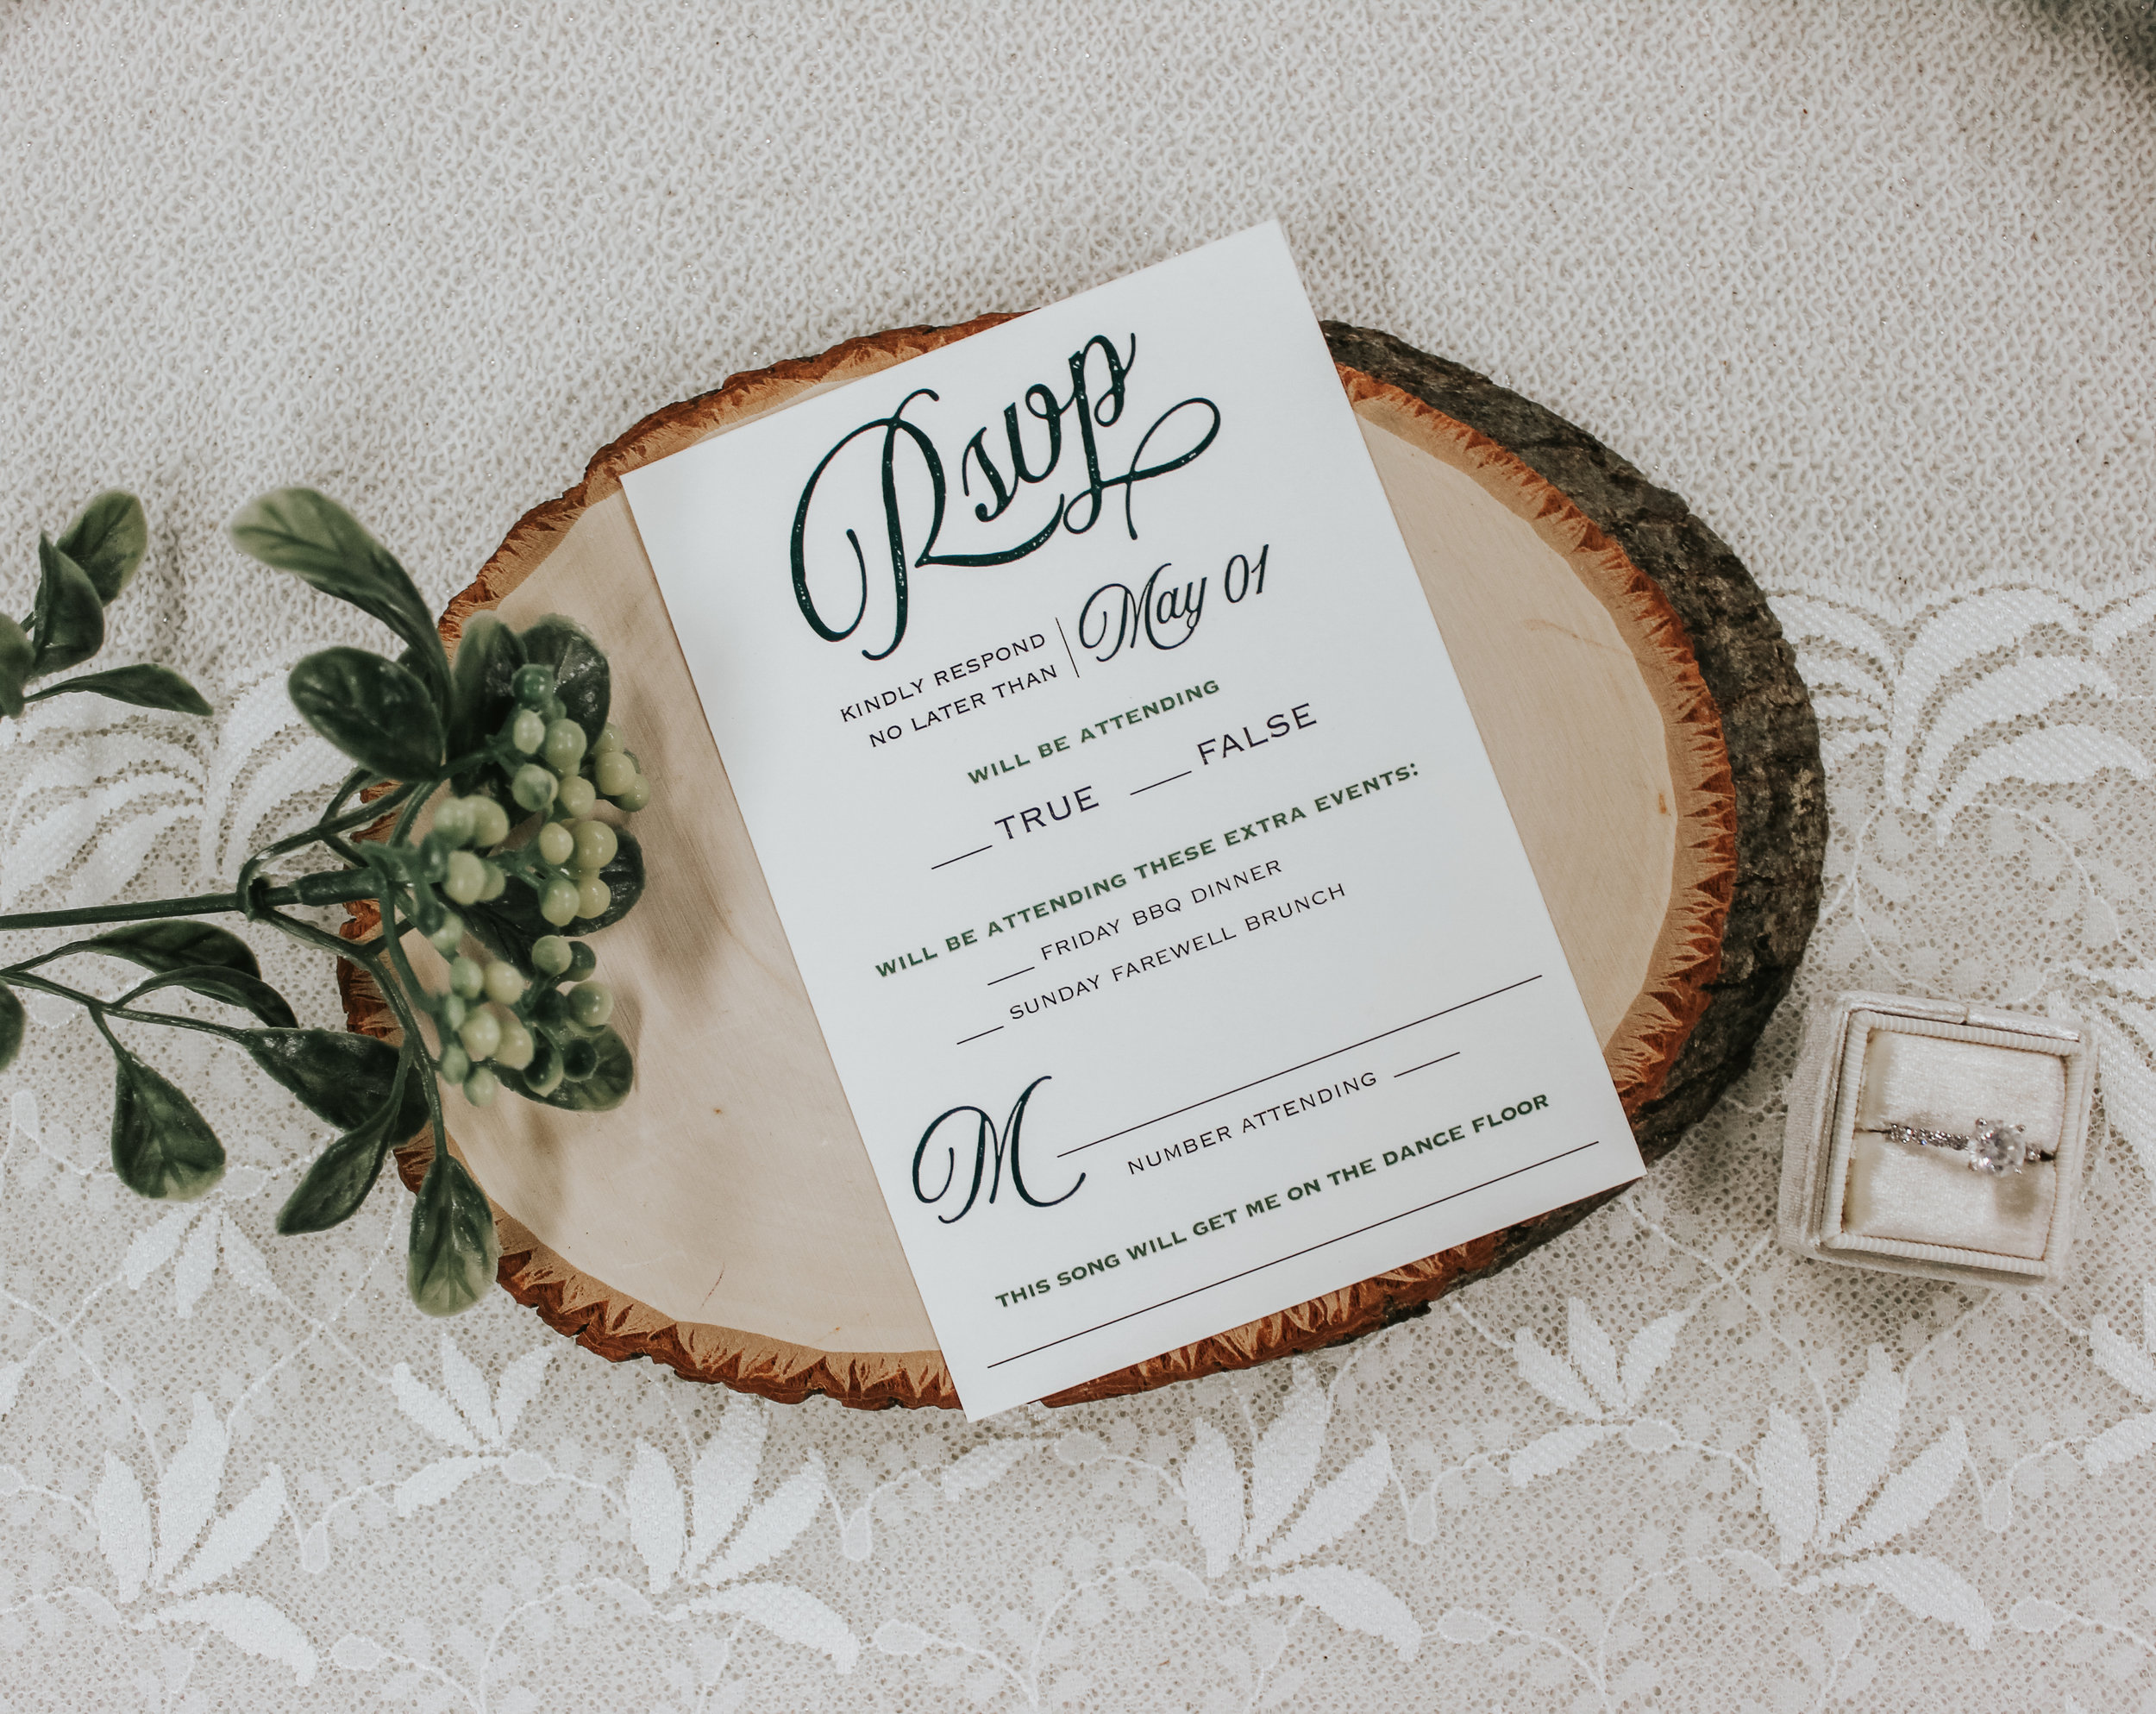 Guests Say Yes Rsvp Card Inspiration Art Paper Scissors